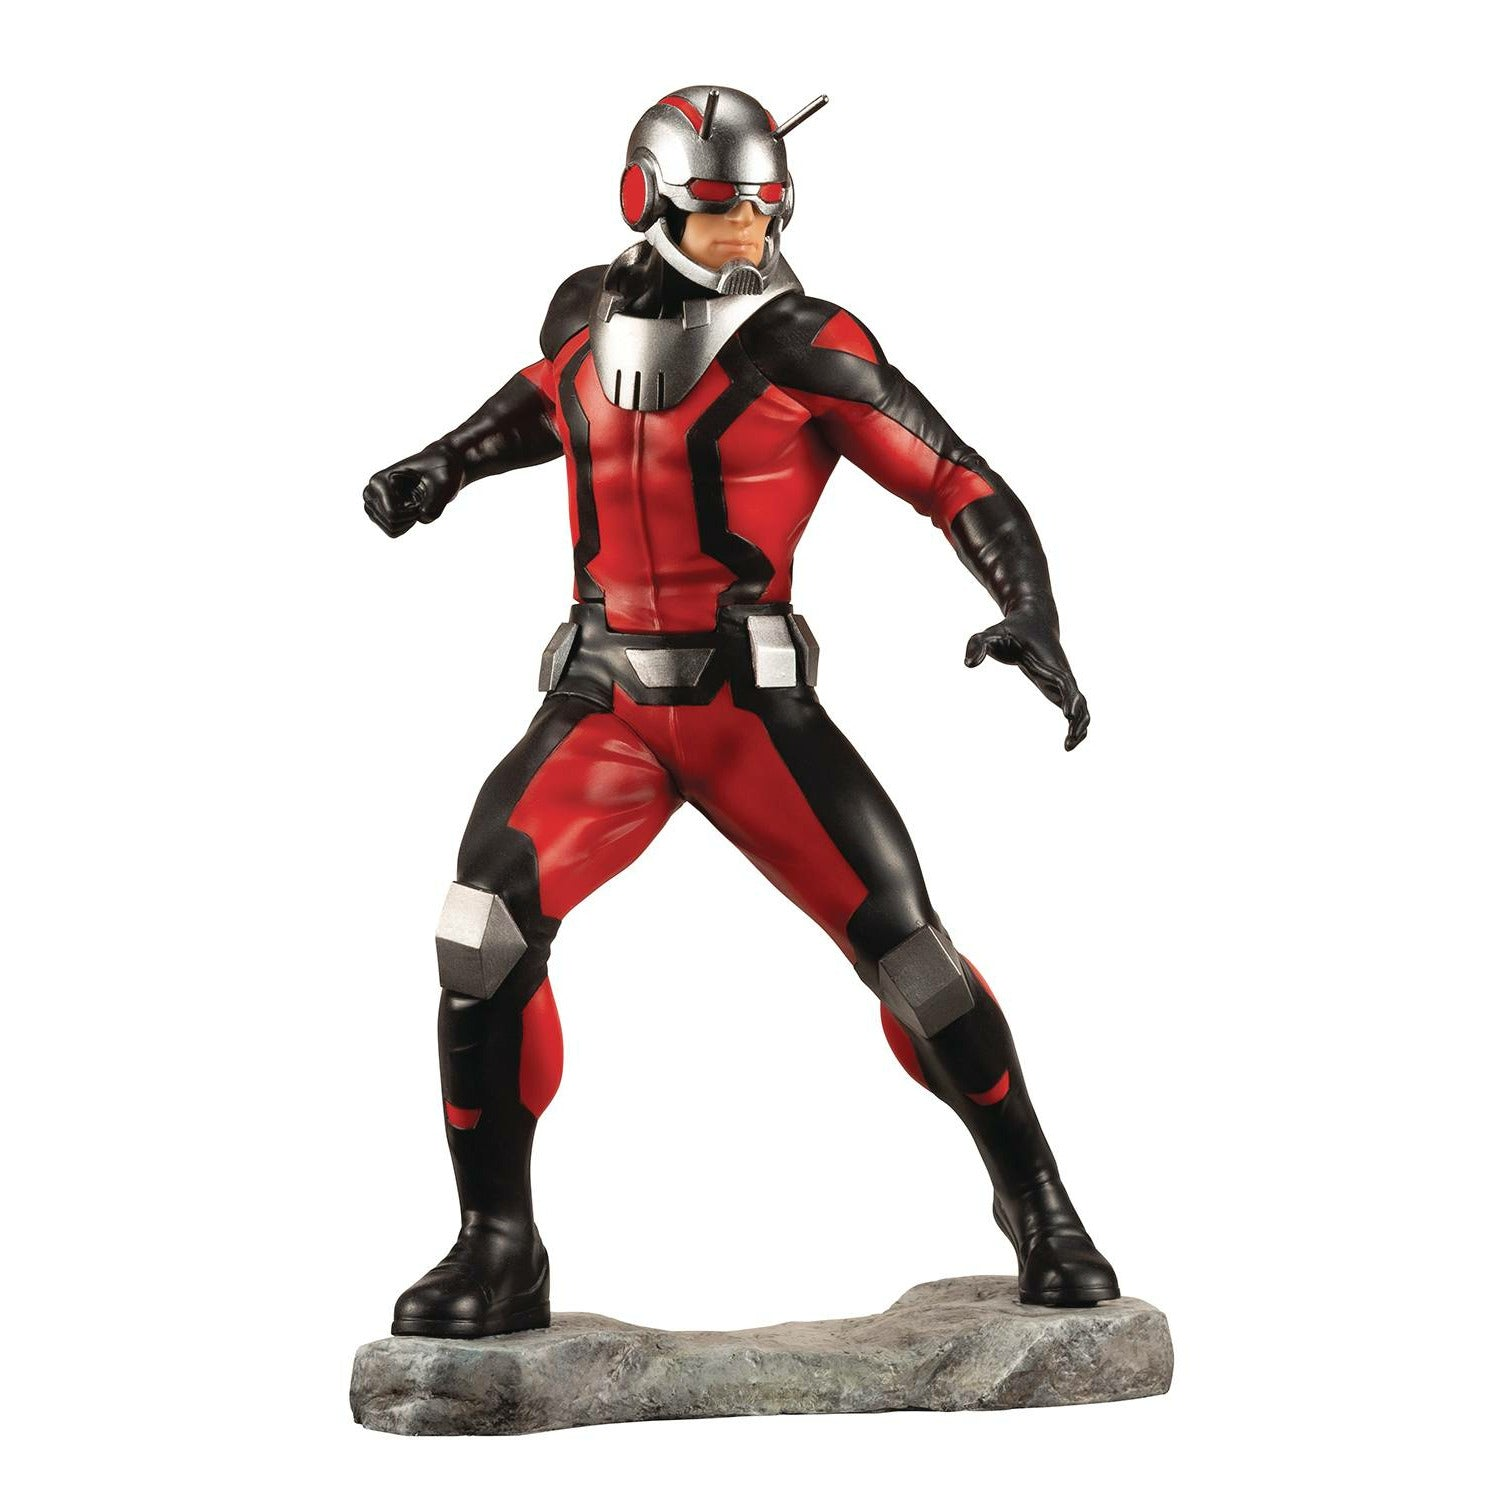 Marvel Ant-Man and the Wasp ArtFX+ 1/10 Scale Figure